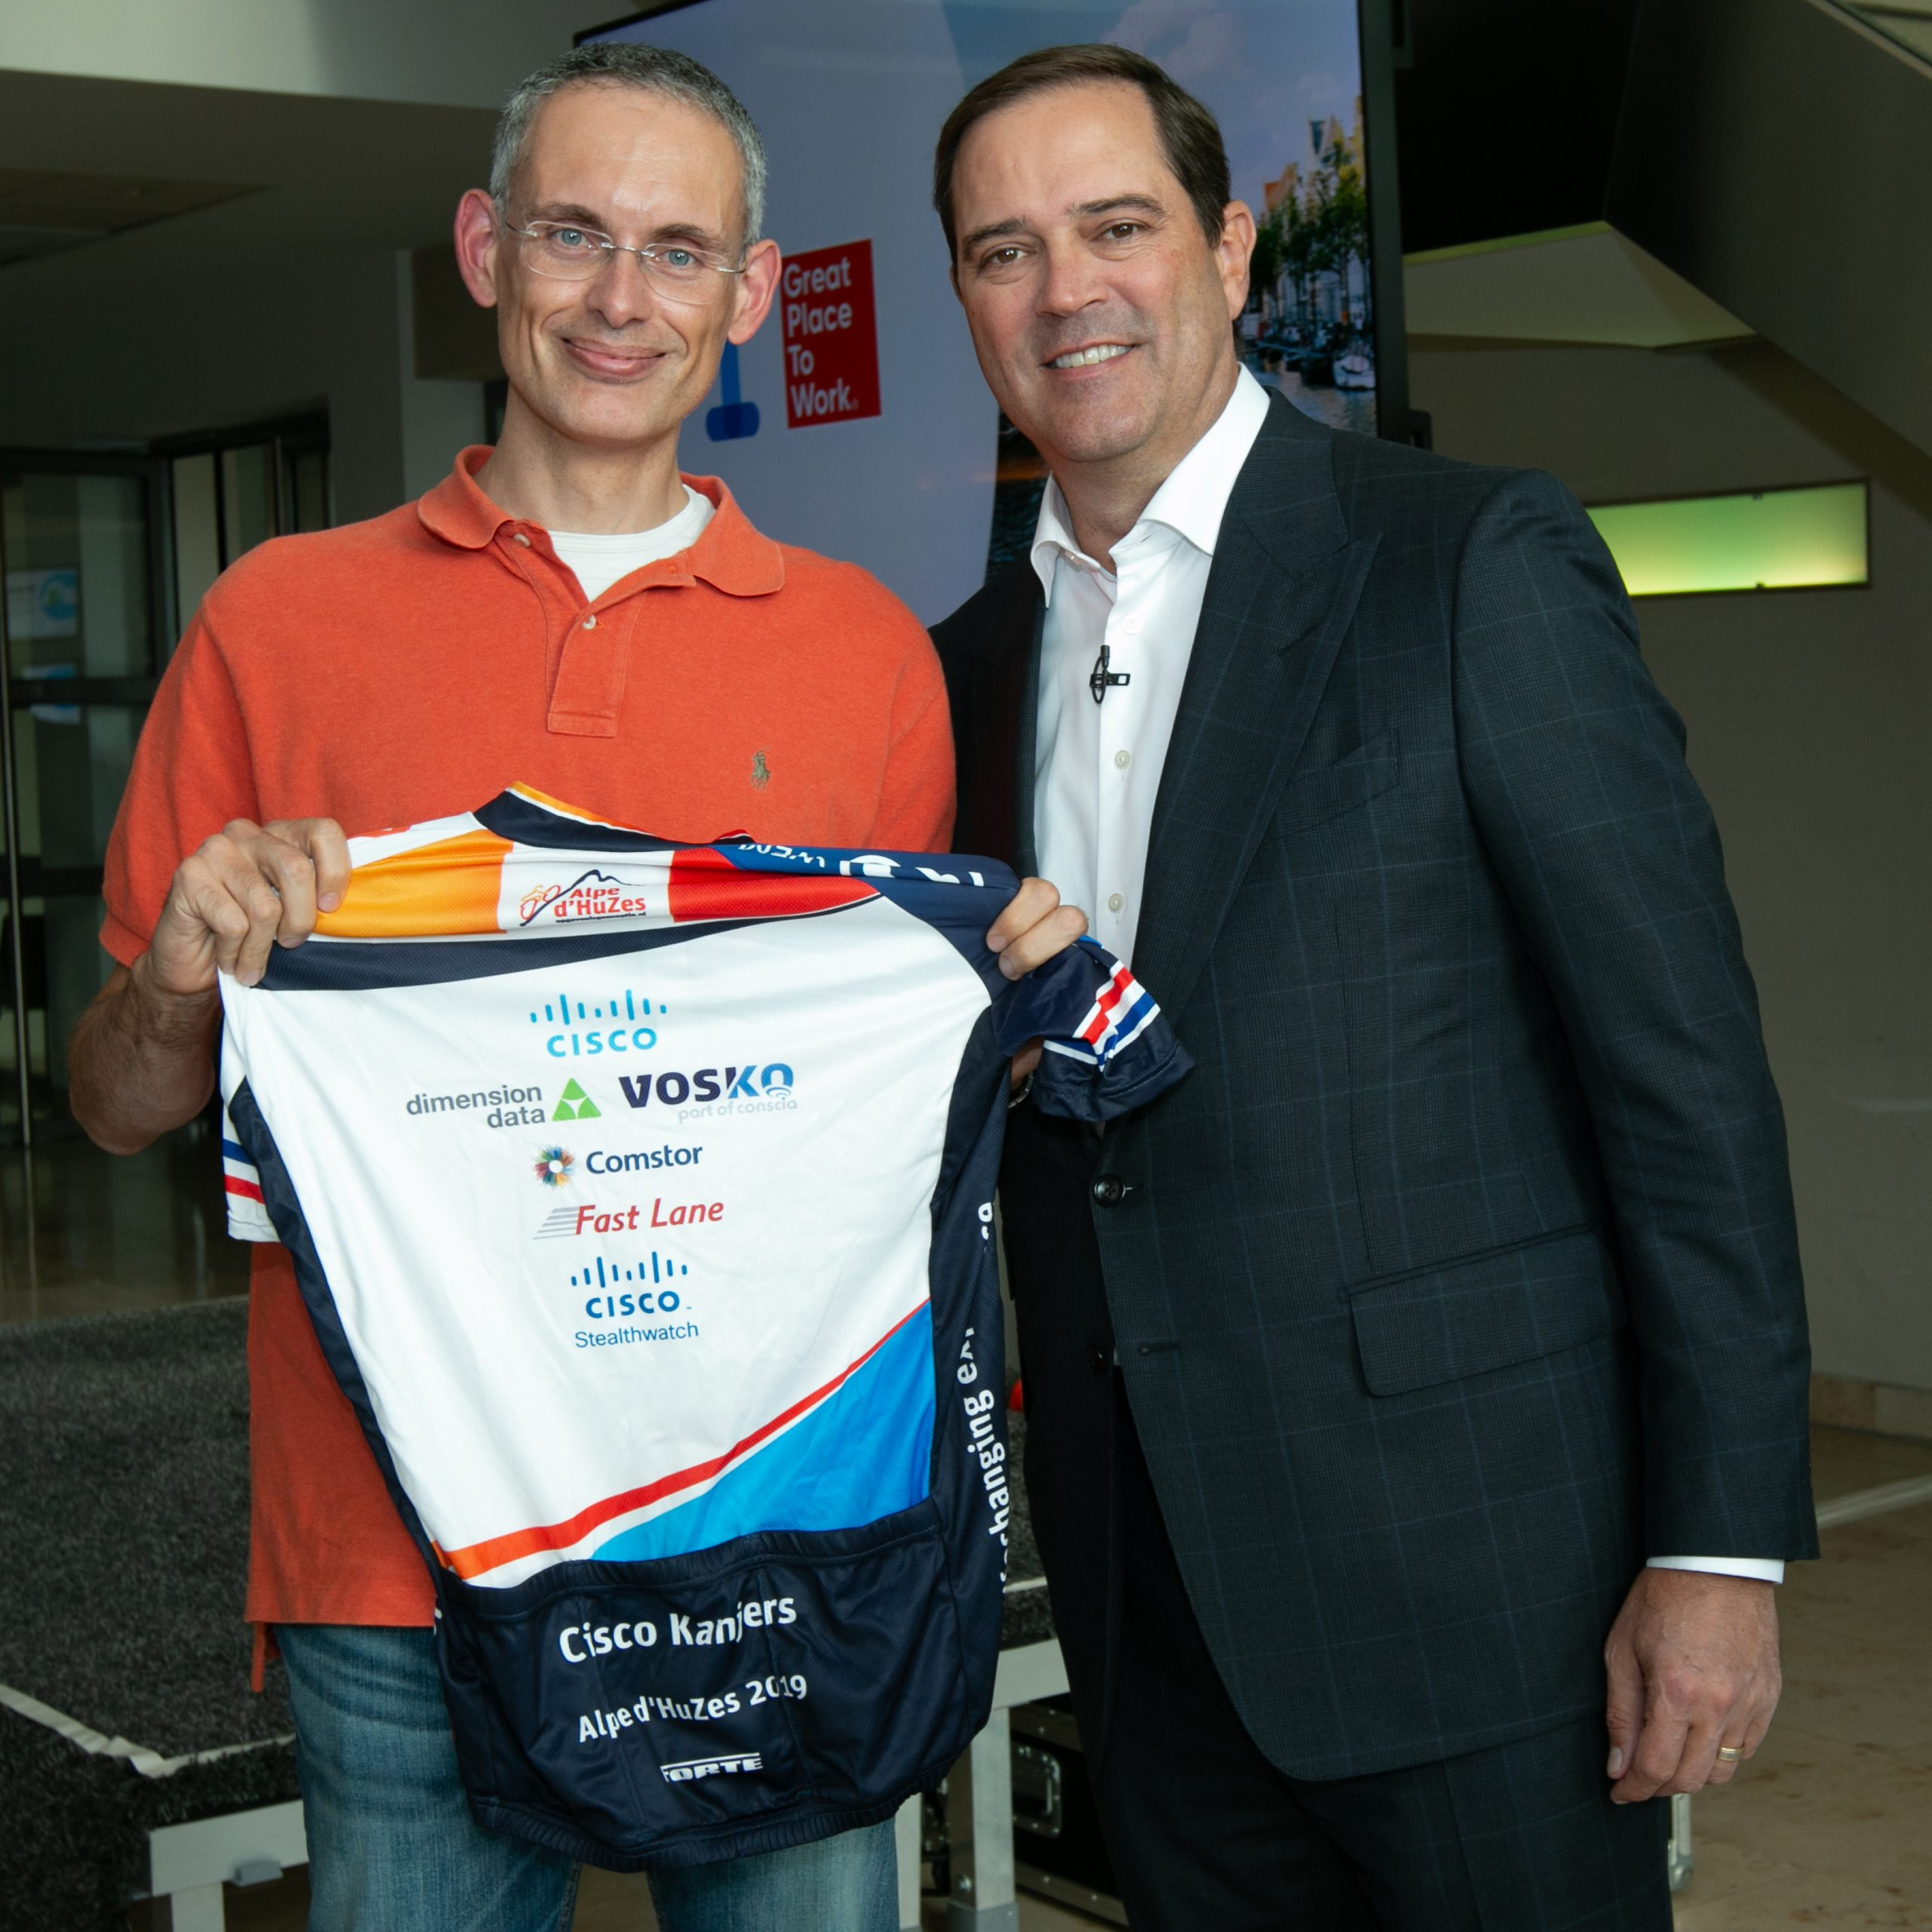 Mark holds his biking shirt smiling next to Cisco CEO Chuck Robbins.